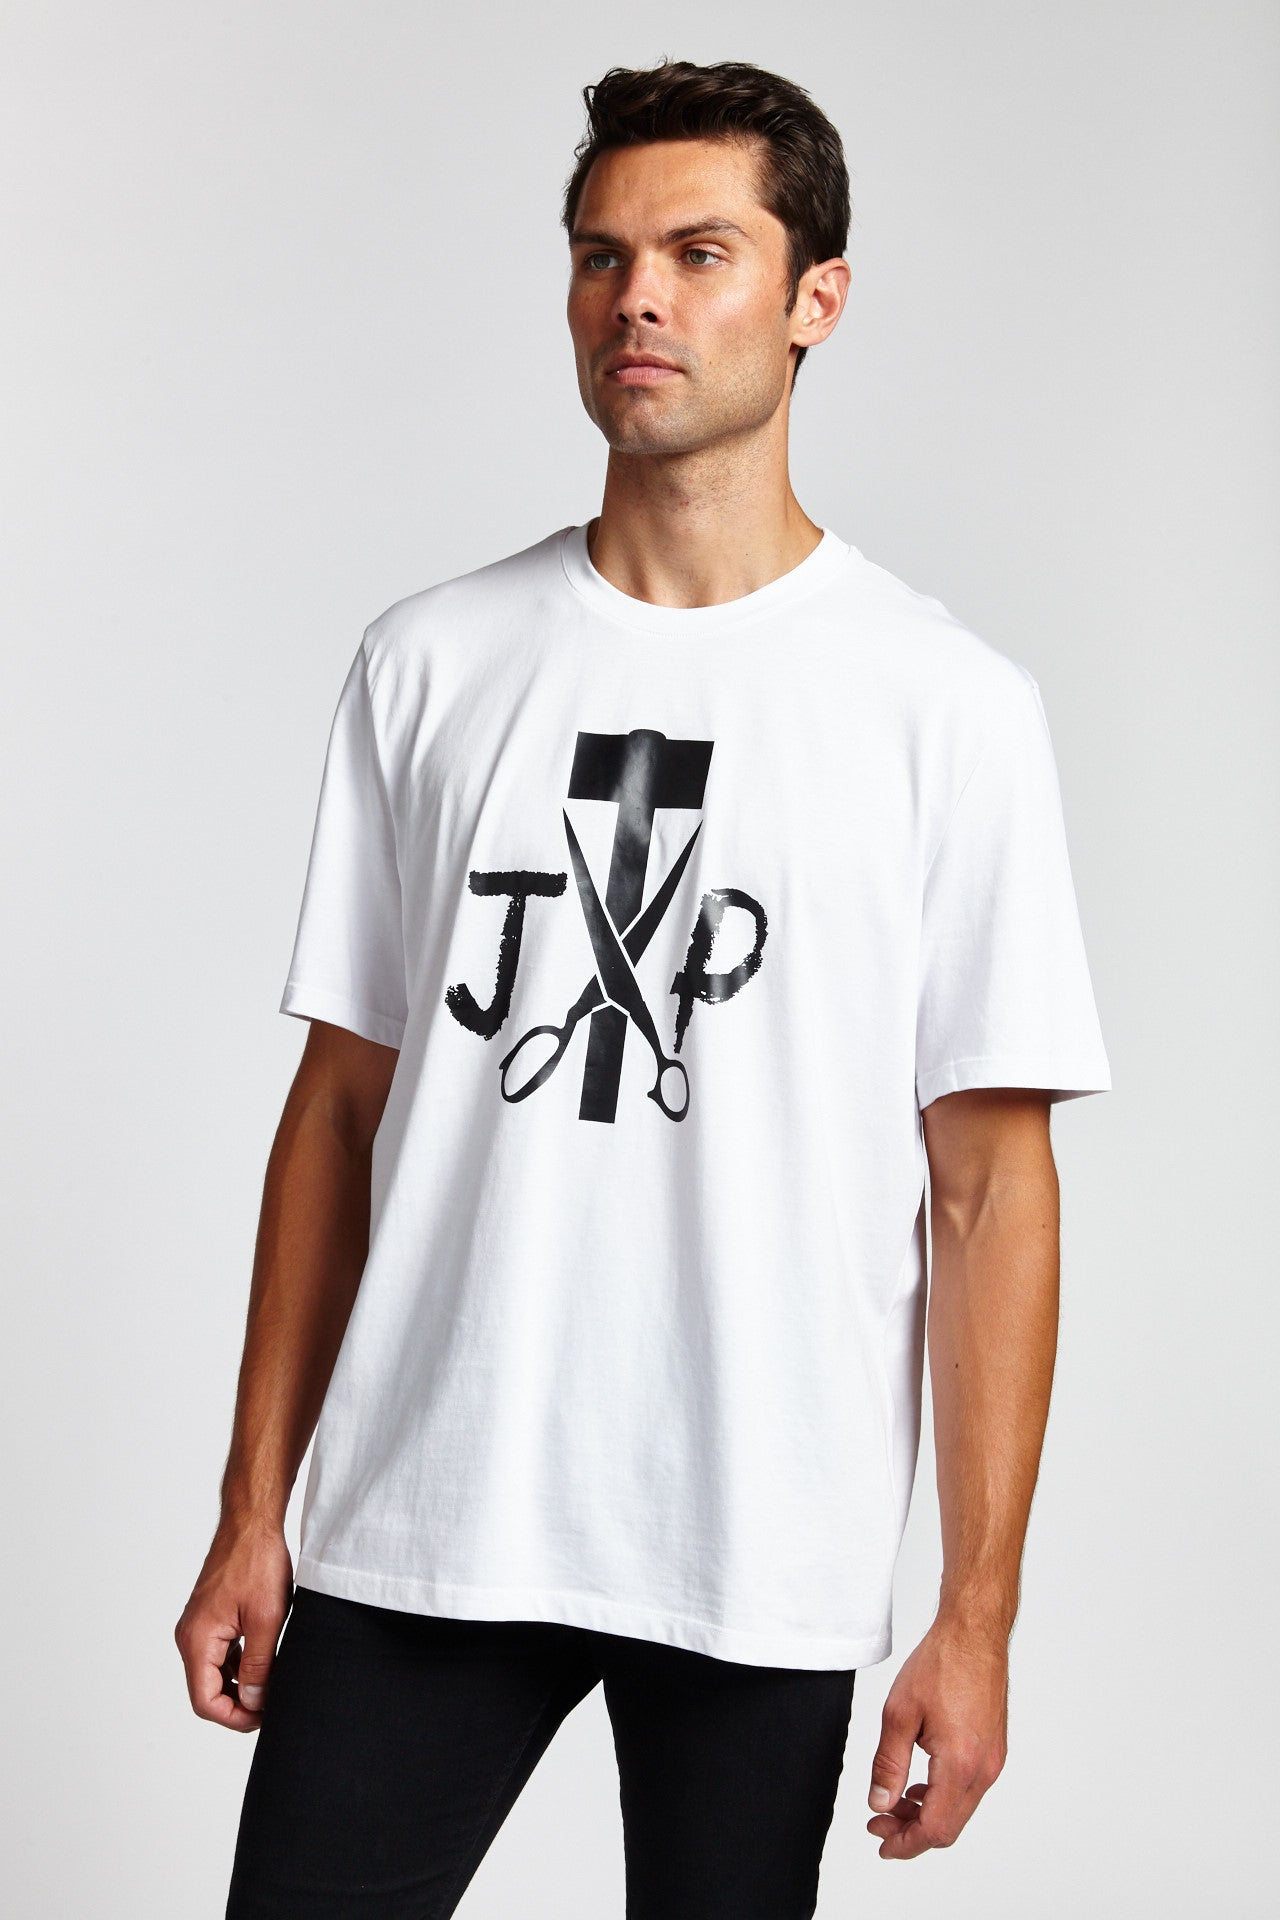 JP CUSTOM LOGO COTTON WHITE PAINT SPLAT LARGE T-SHIRT-SHIRTS-Mundane Official-L-WHITE-Mundane Official